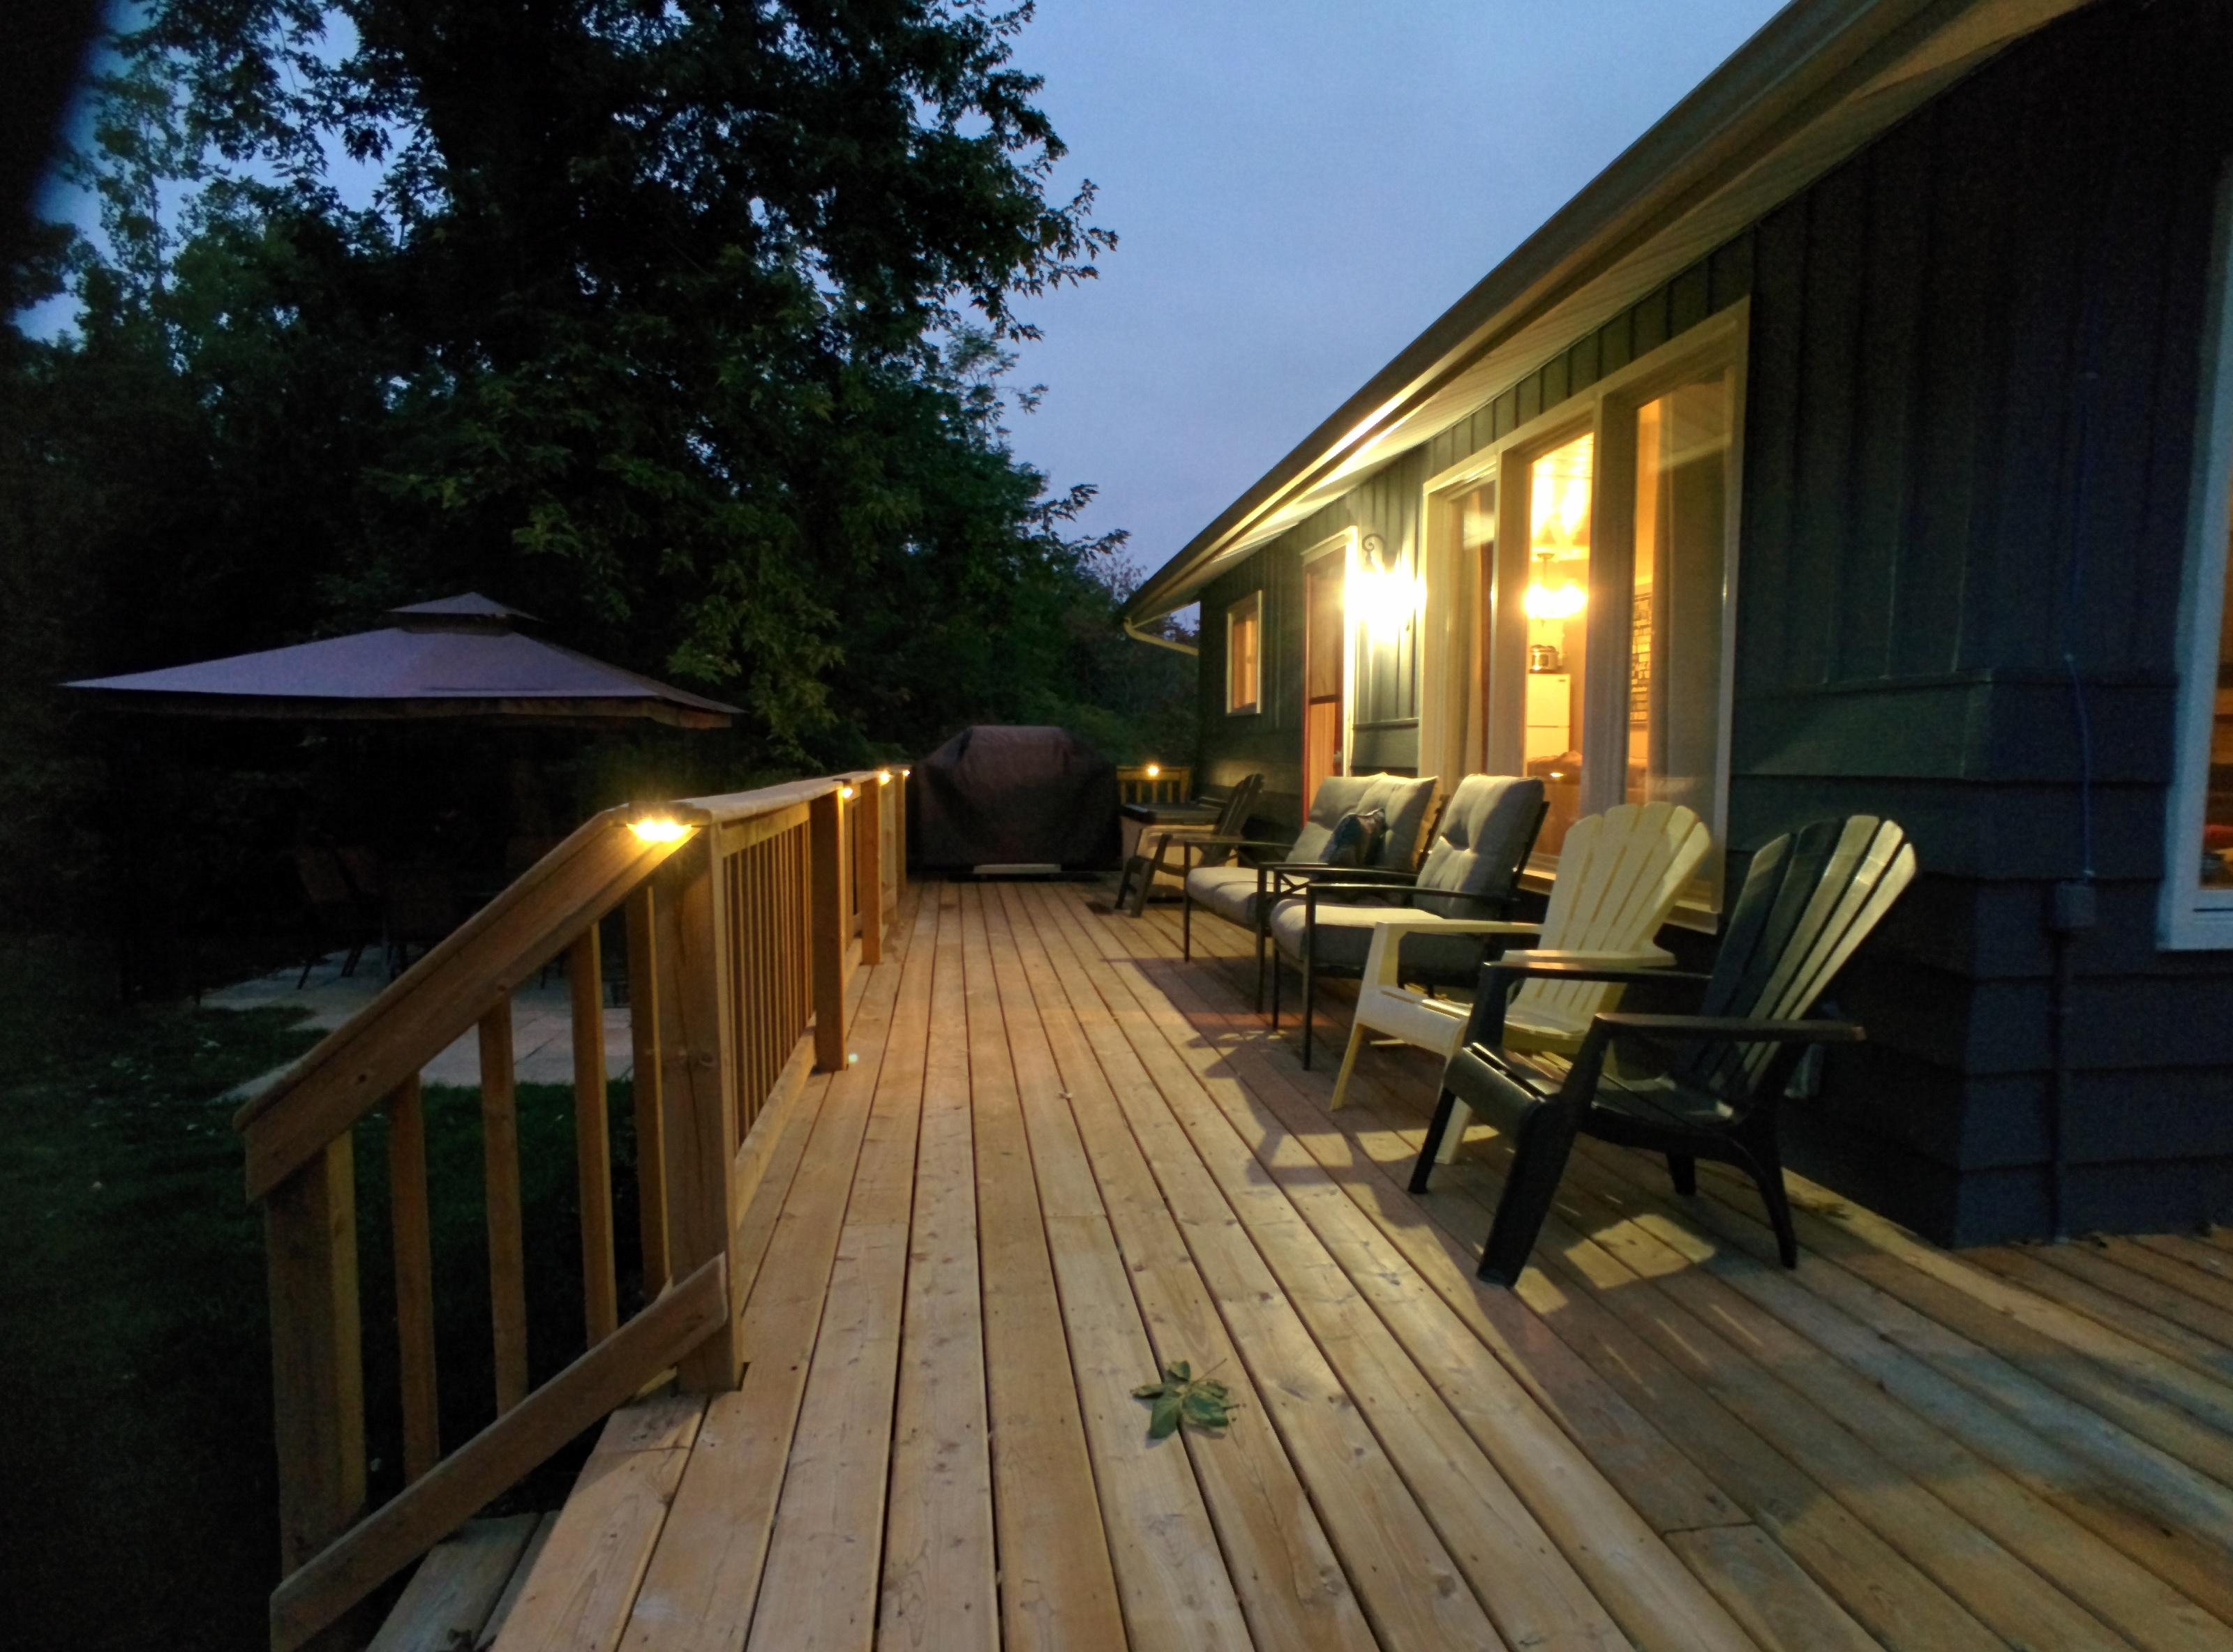 Relax and reconnect on the deck.